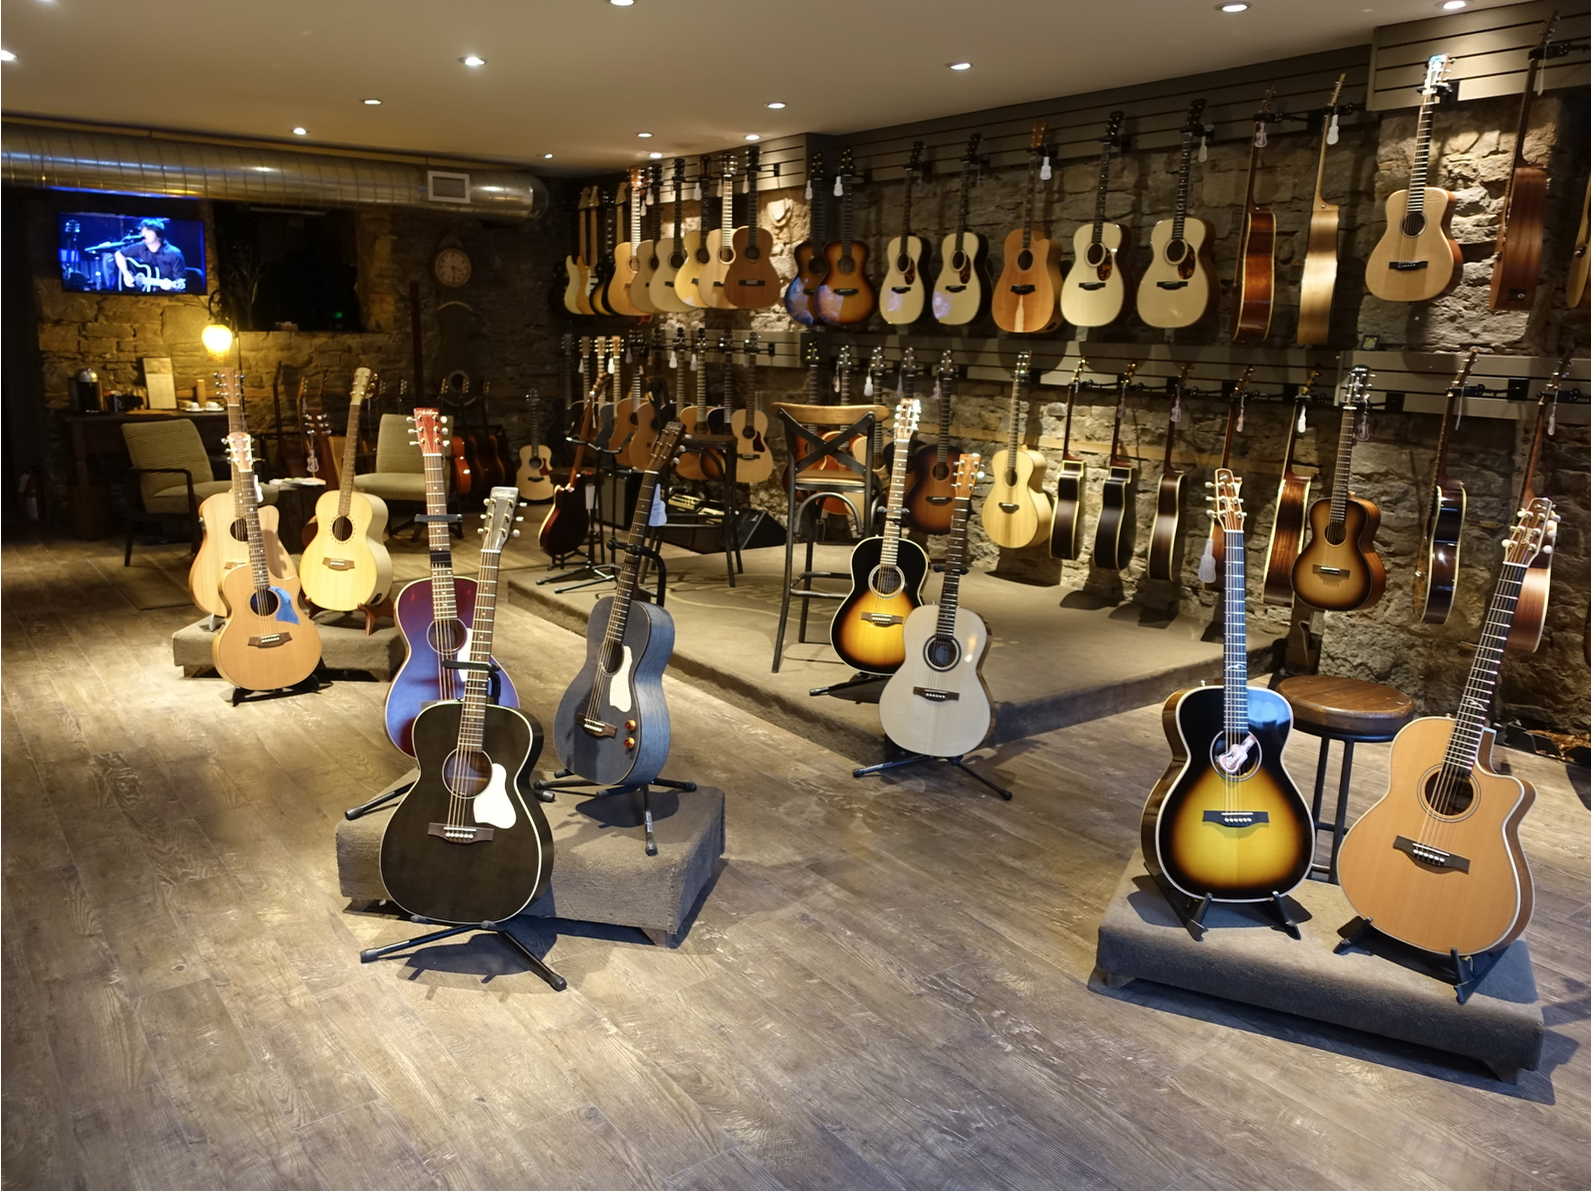 If you are into guitars you will want to check out The Acoustic Room on James St. N, near St. Joe's Hospital.  Yes, they only sell acoustic guitars.  It is like an art gallery for guitars.